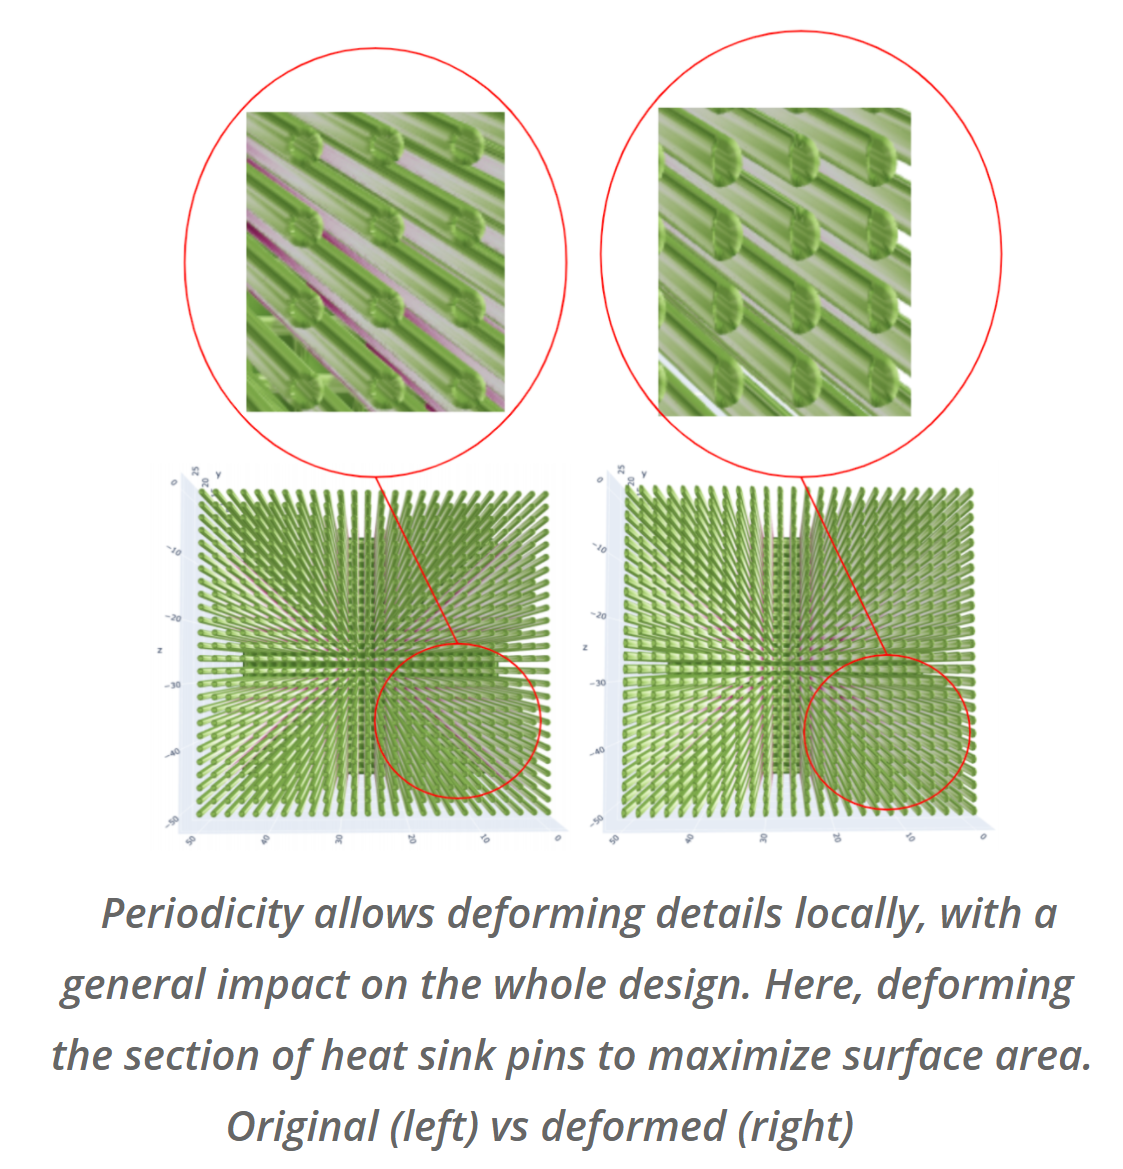 Periodicity allows deforming details locally, with a general impact on the whole design. Here, deforming the section of heat sink pins to maximise surface area.